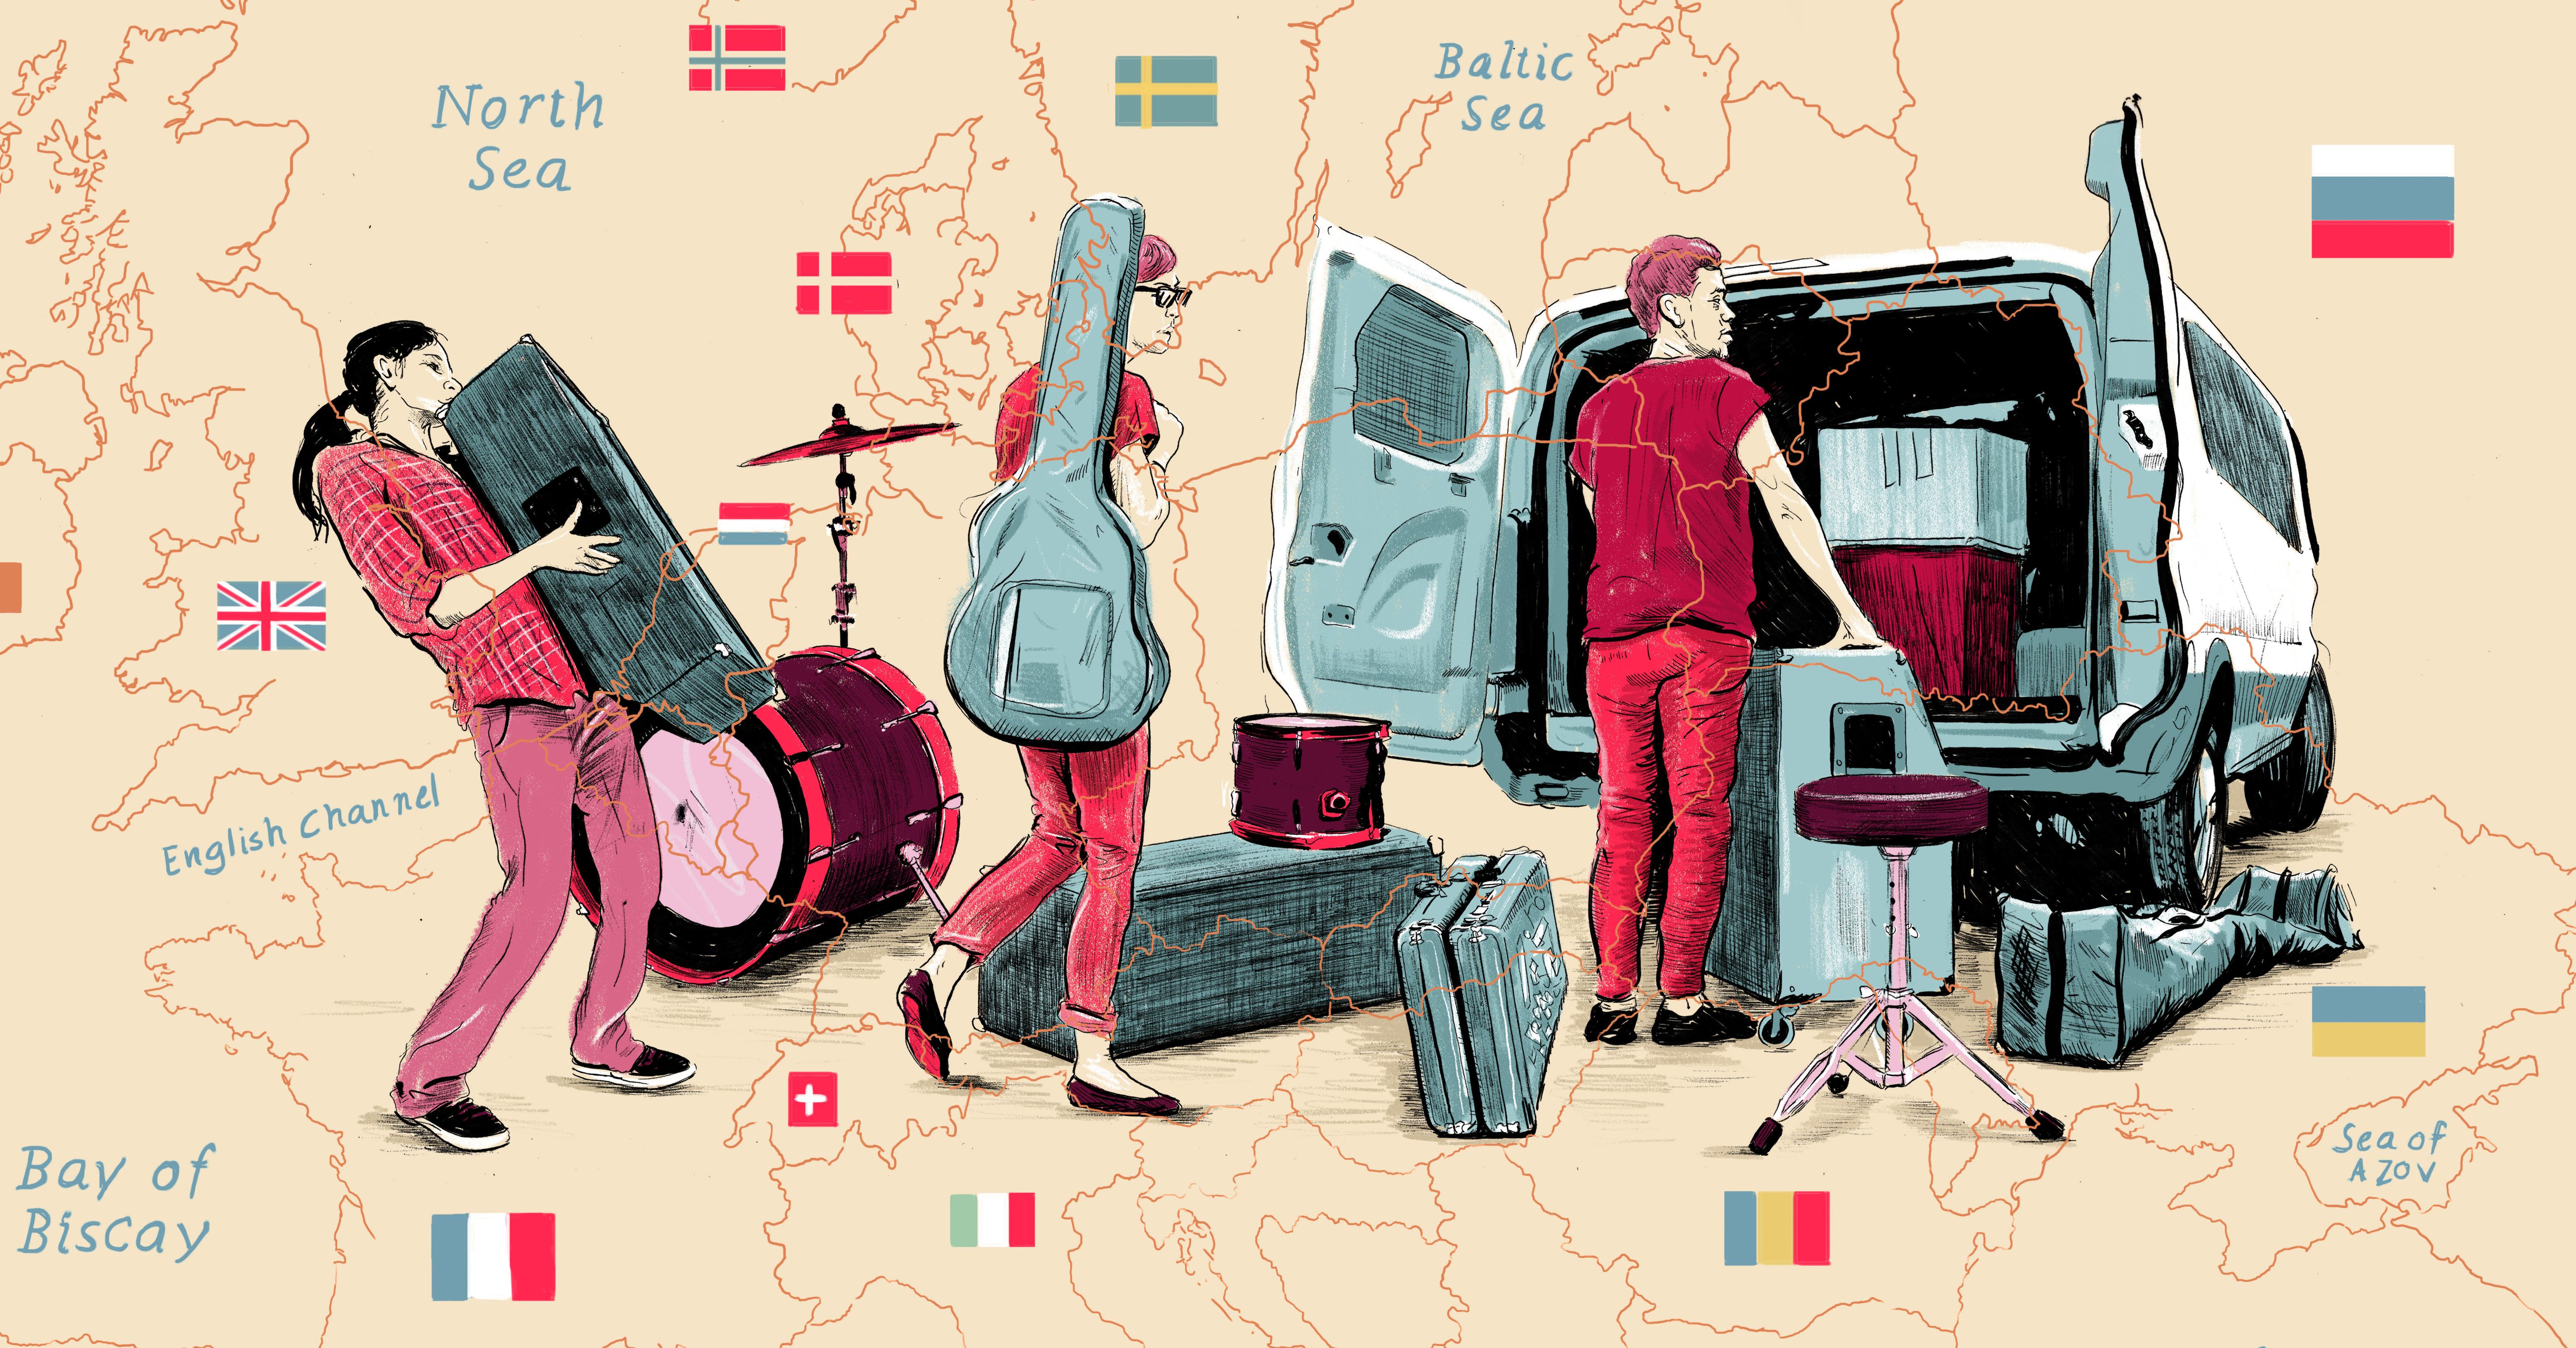 a8e0942221 How to Book a European Tour as a Broke American with No Money or Industry  Contacts - Noisey